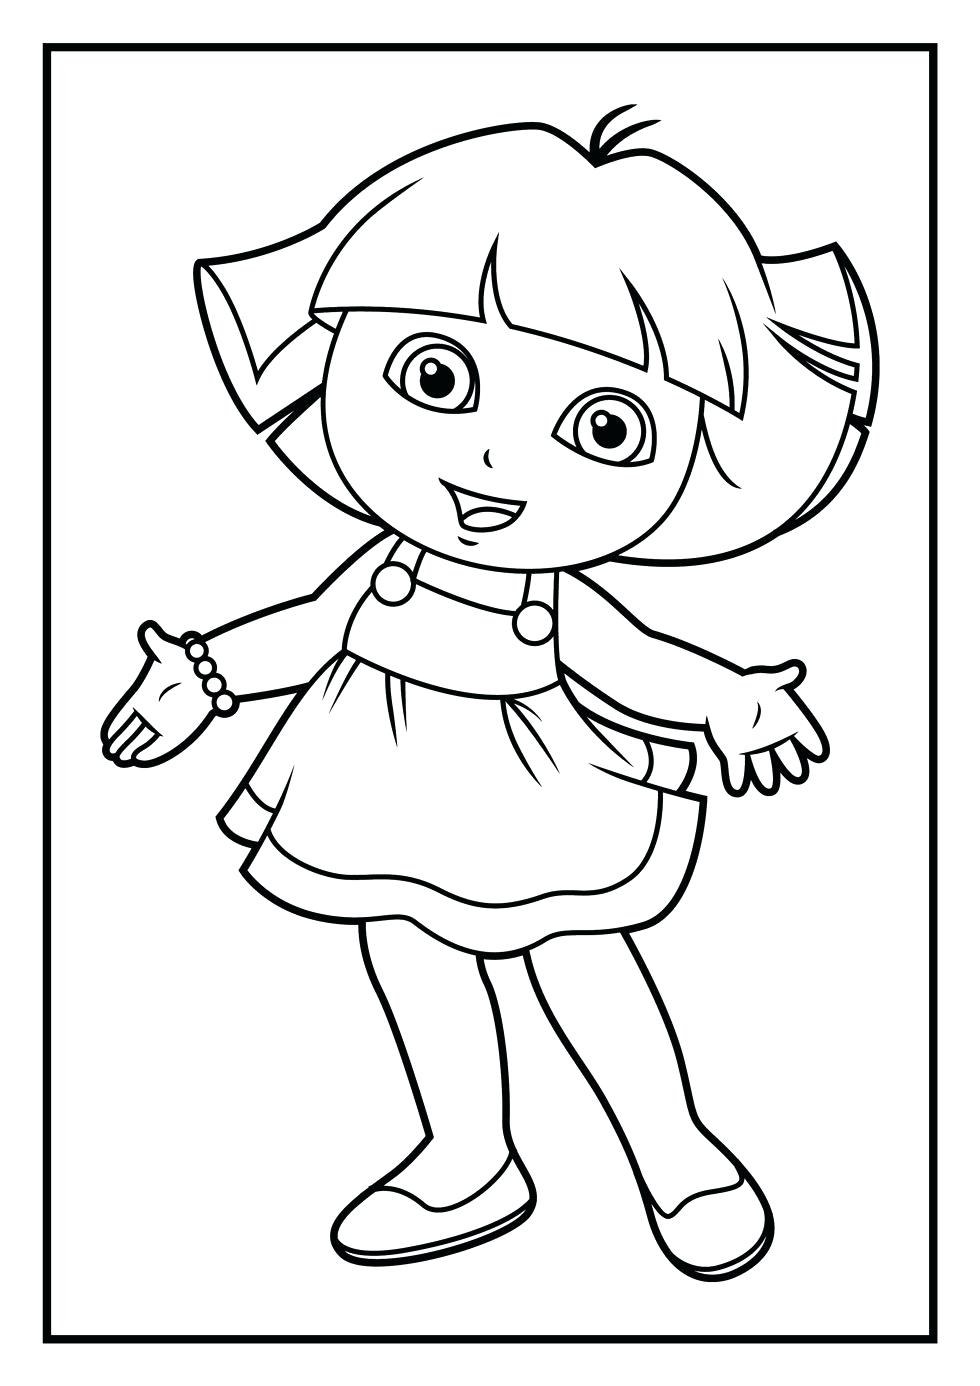 980x1386 Coloring Dora The Explorer Coloring Sheets Pages And Line